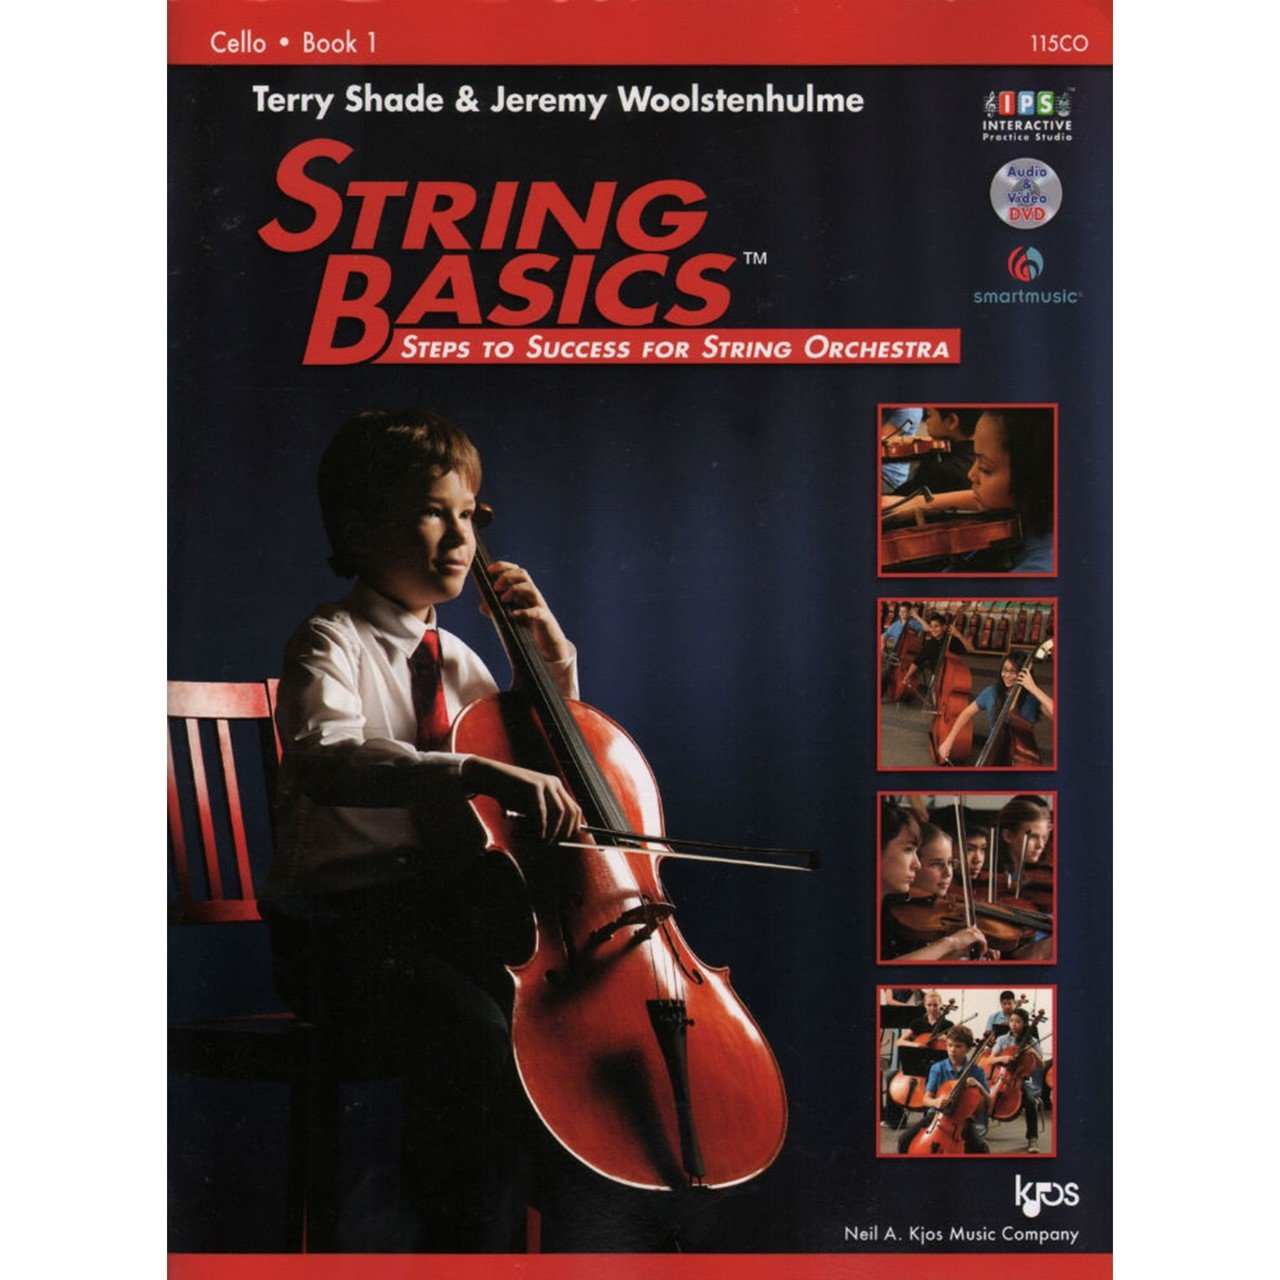 STRINGS BASICS CELLO BOOK 1 - Arties Music Online